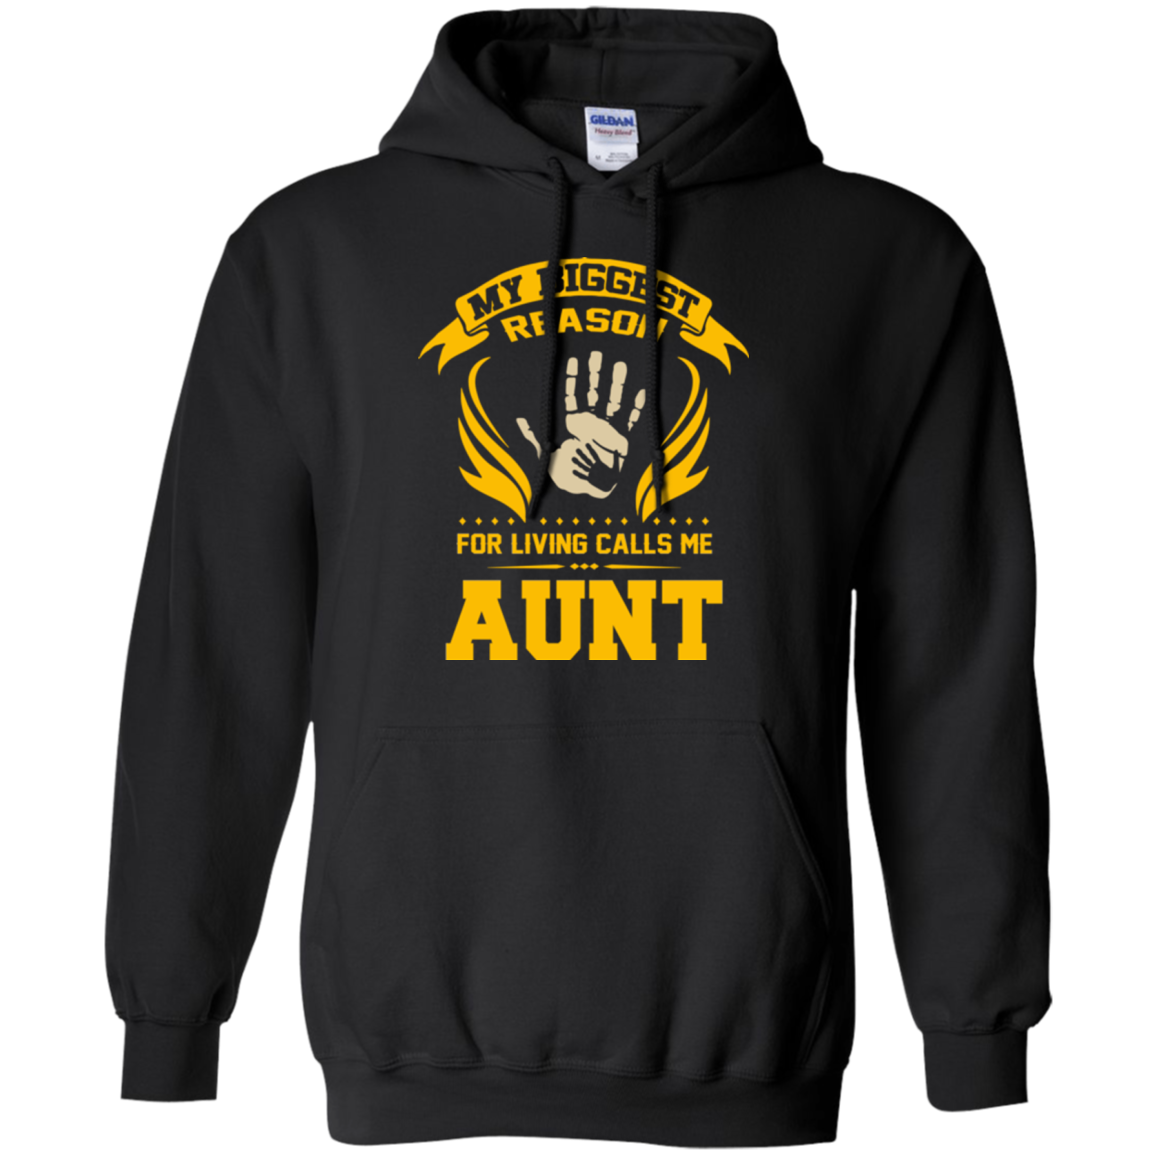 Aunt T shirts Biggest Reason For Living Call Me Hoodies Sweatshirts TH